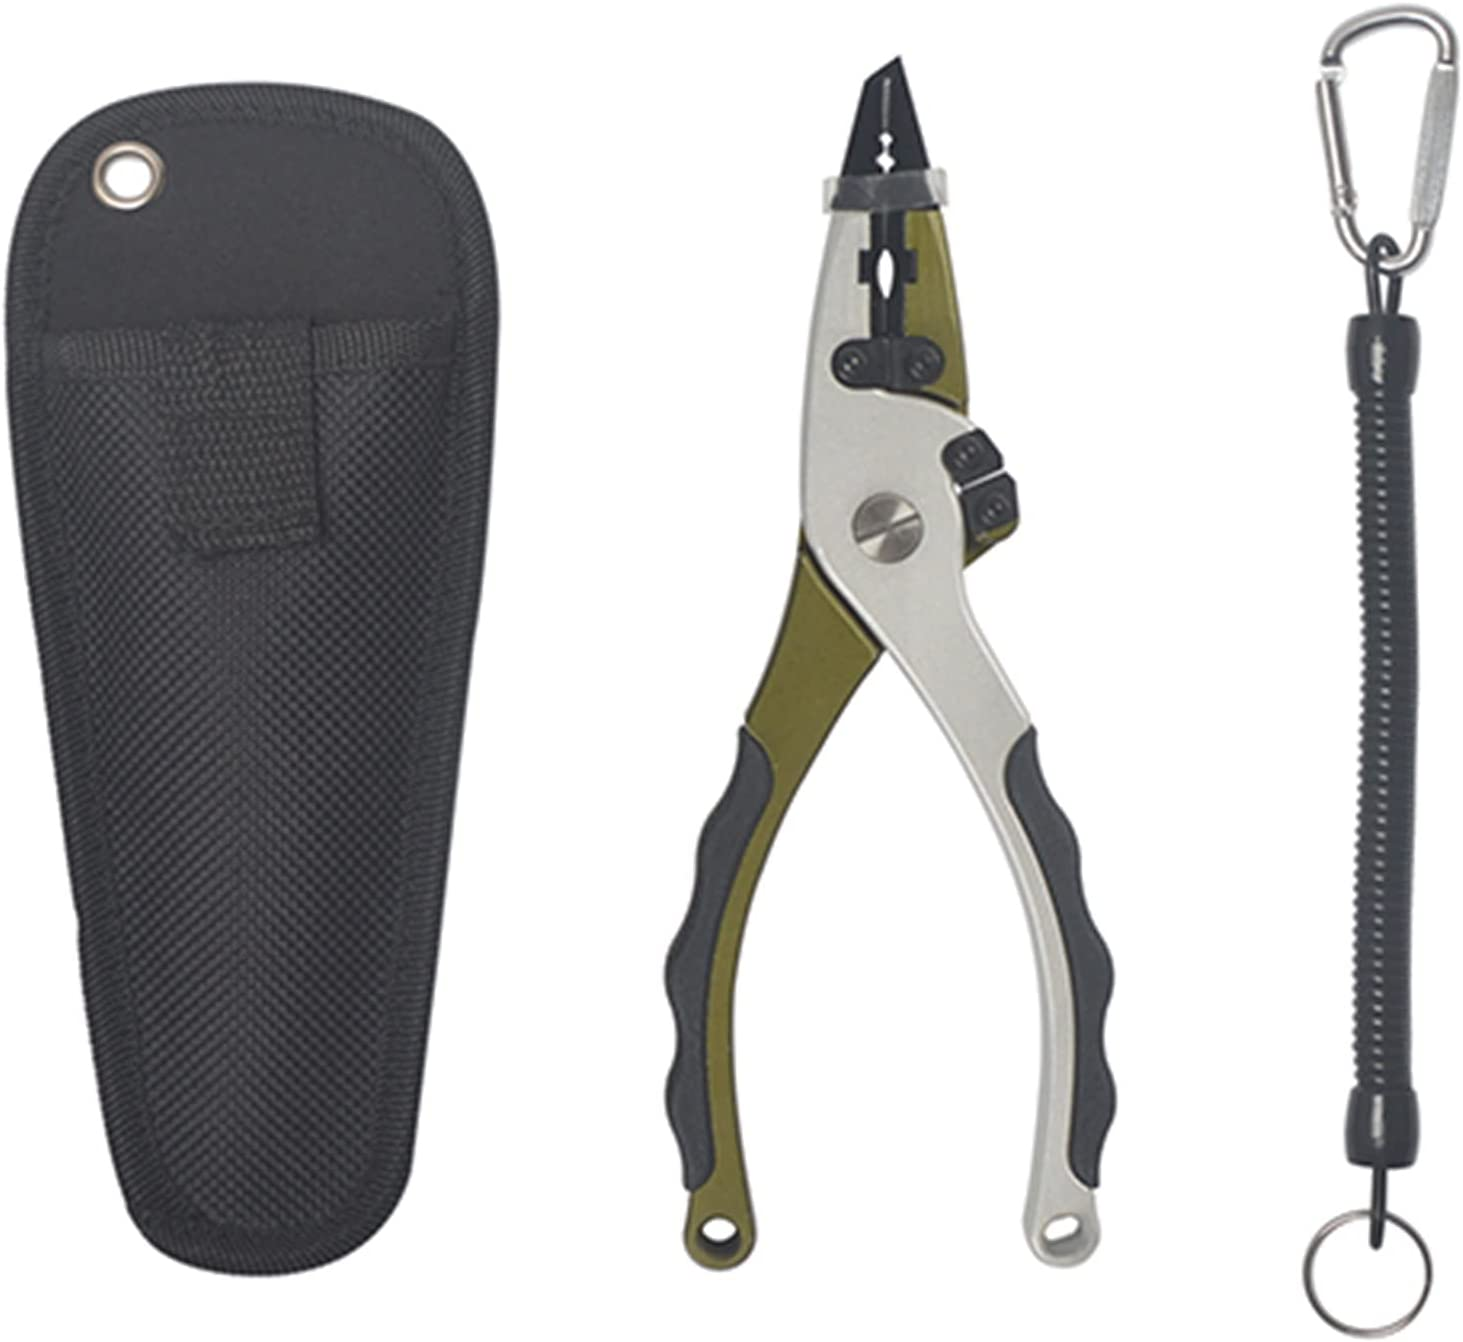 New Two Tungsten Steel Pliers Aluminium Max 79% OFF Max 79% OFF Fishing Cutters